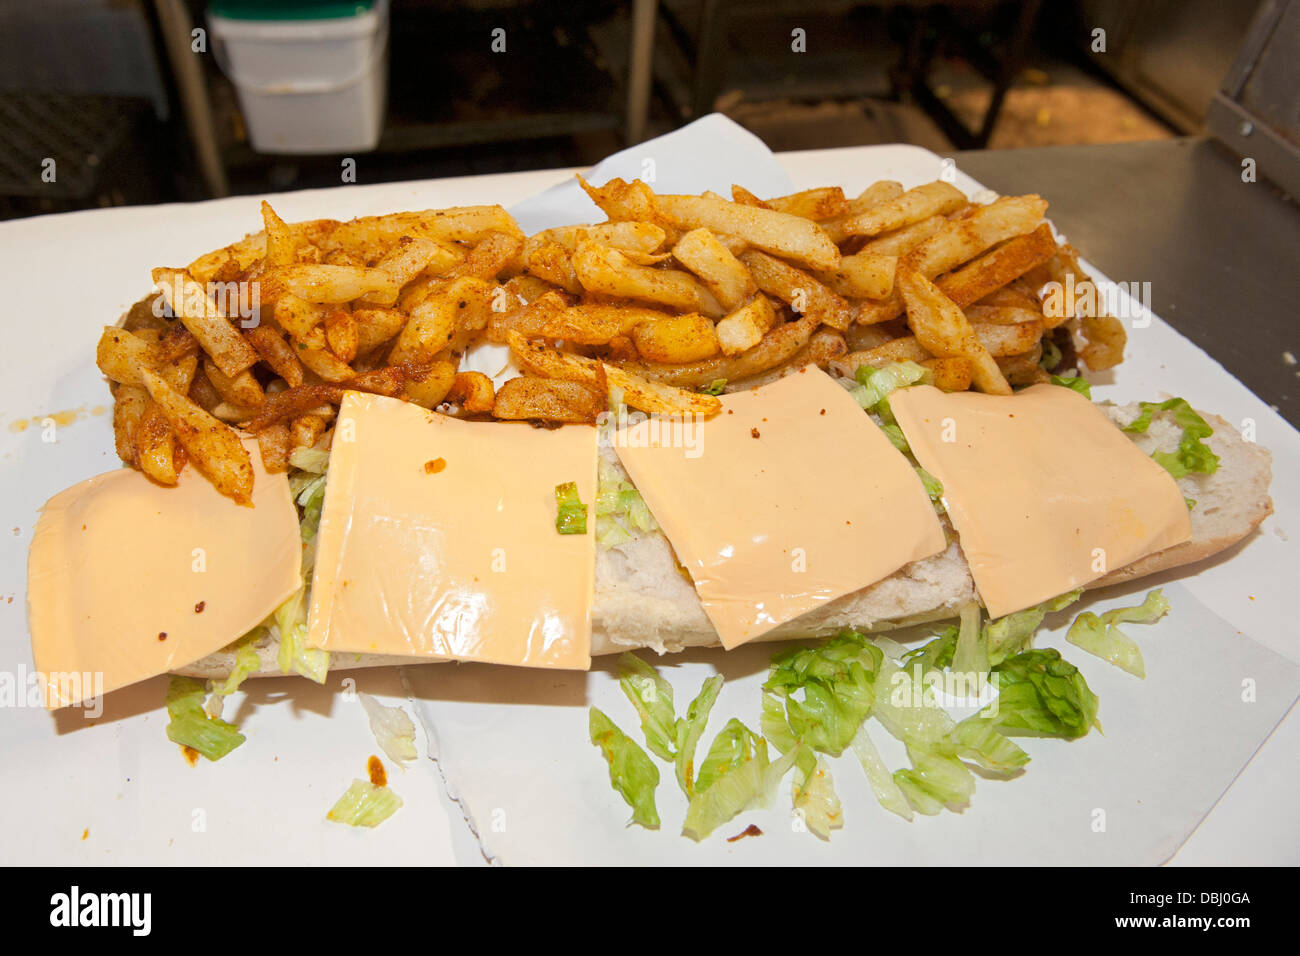 Full House gatsby sandwich being prepared at the Golden Dish take away in Athlone, Cape Town, South Africa. Stock Photo